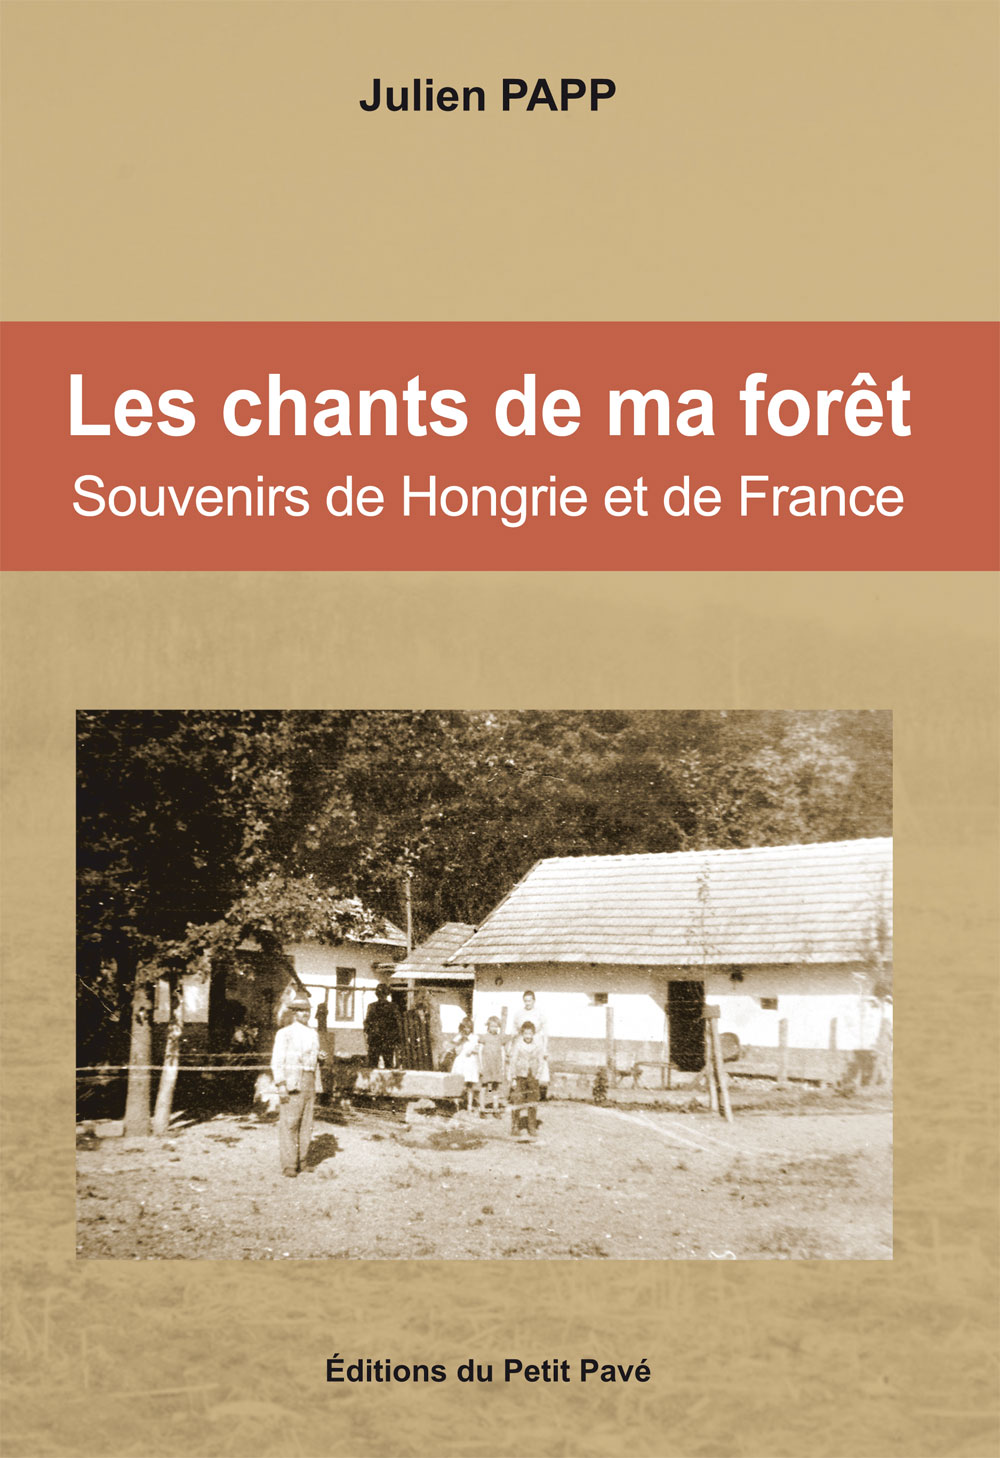 Les chants de ma forêt - Photo 9782847126426.jpg